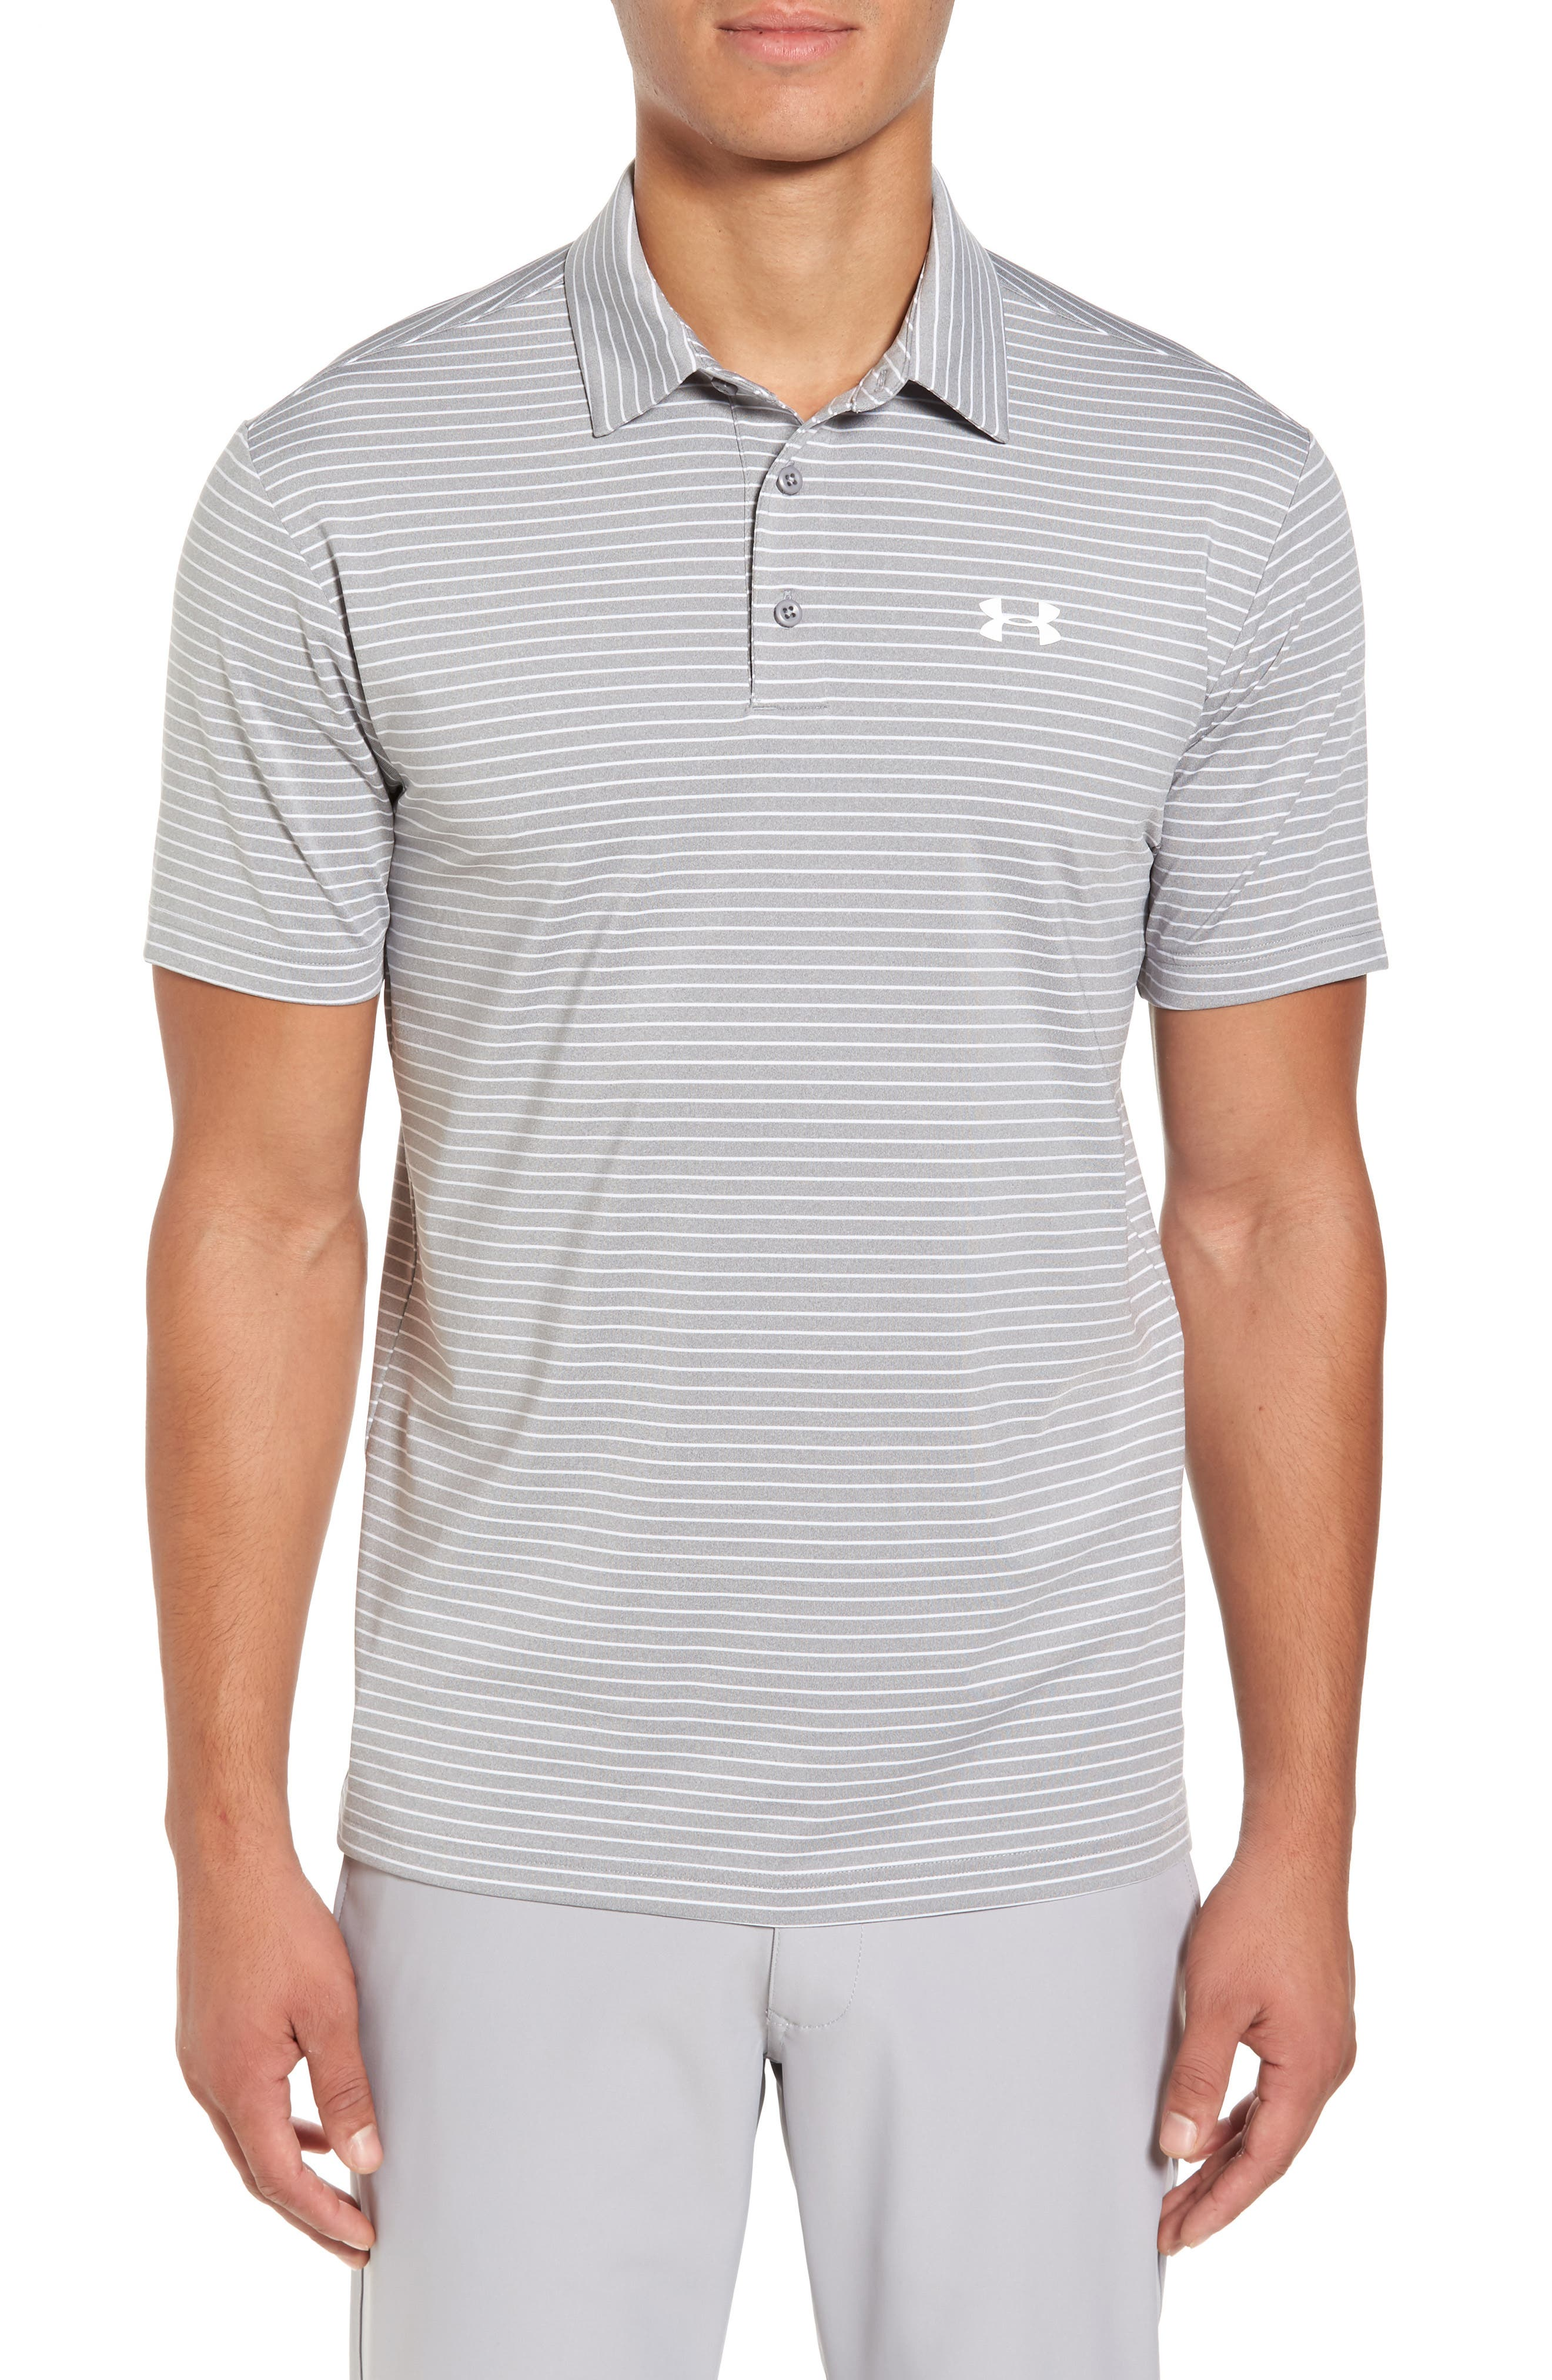 'Playoff' Loose Fit Short Sleeve Polo,                             Main thumbnail 1, color,                             TRUE GREY HEATHER/ WHT STRIPE